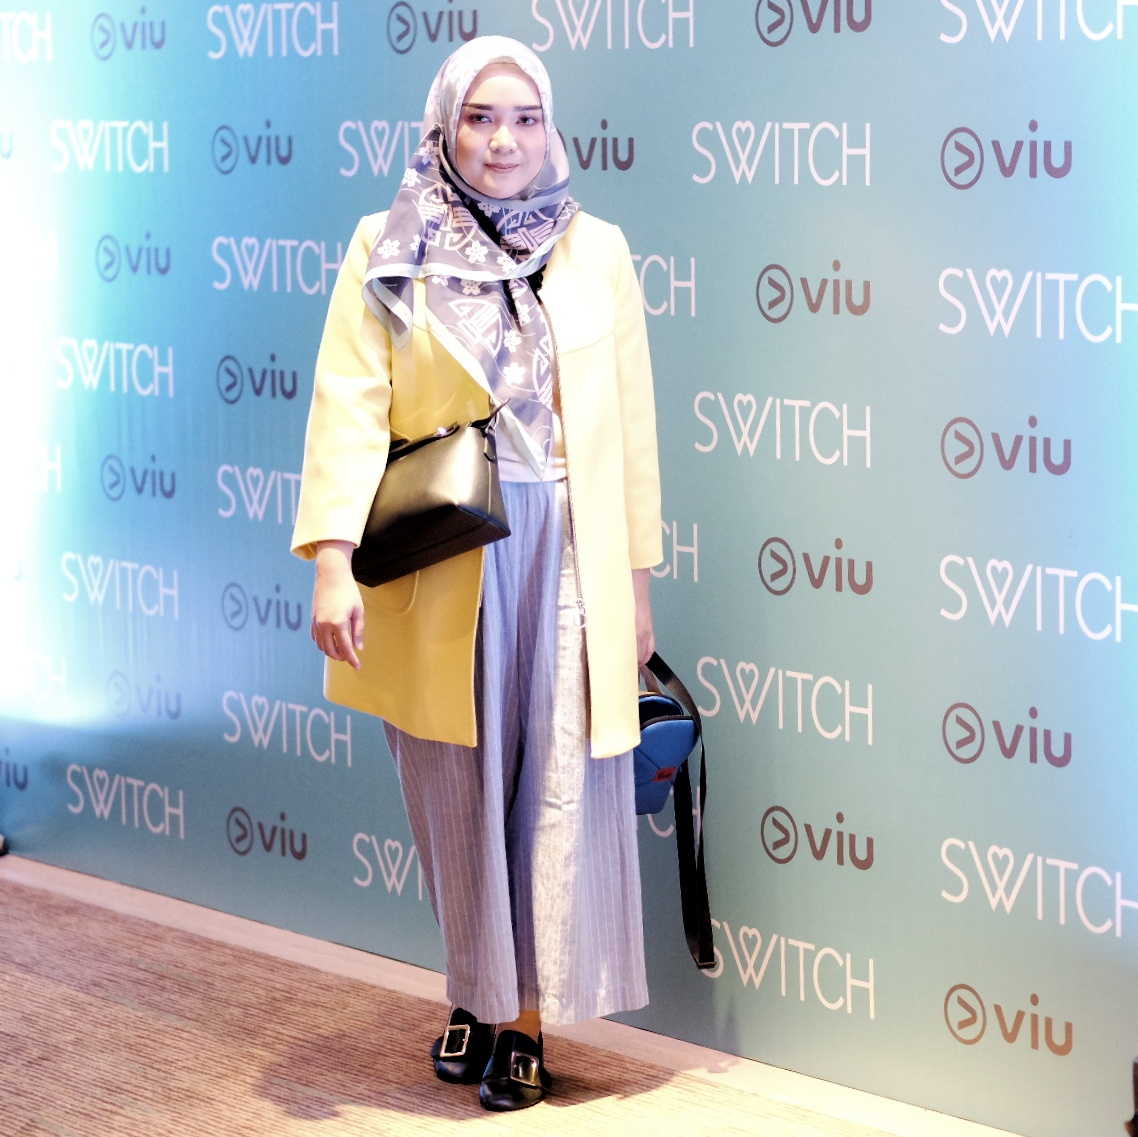 SUCI UTAMI - Productive Housewife: VIU Original Series: Switch